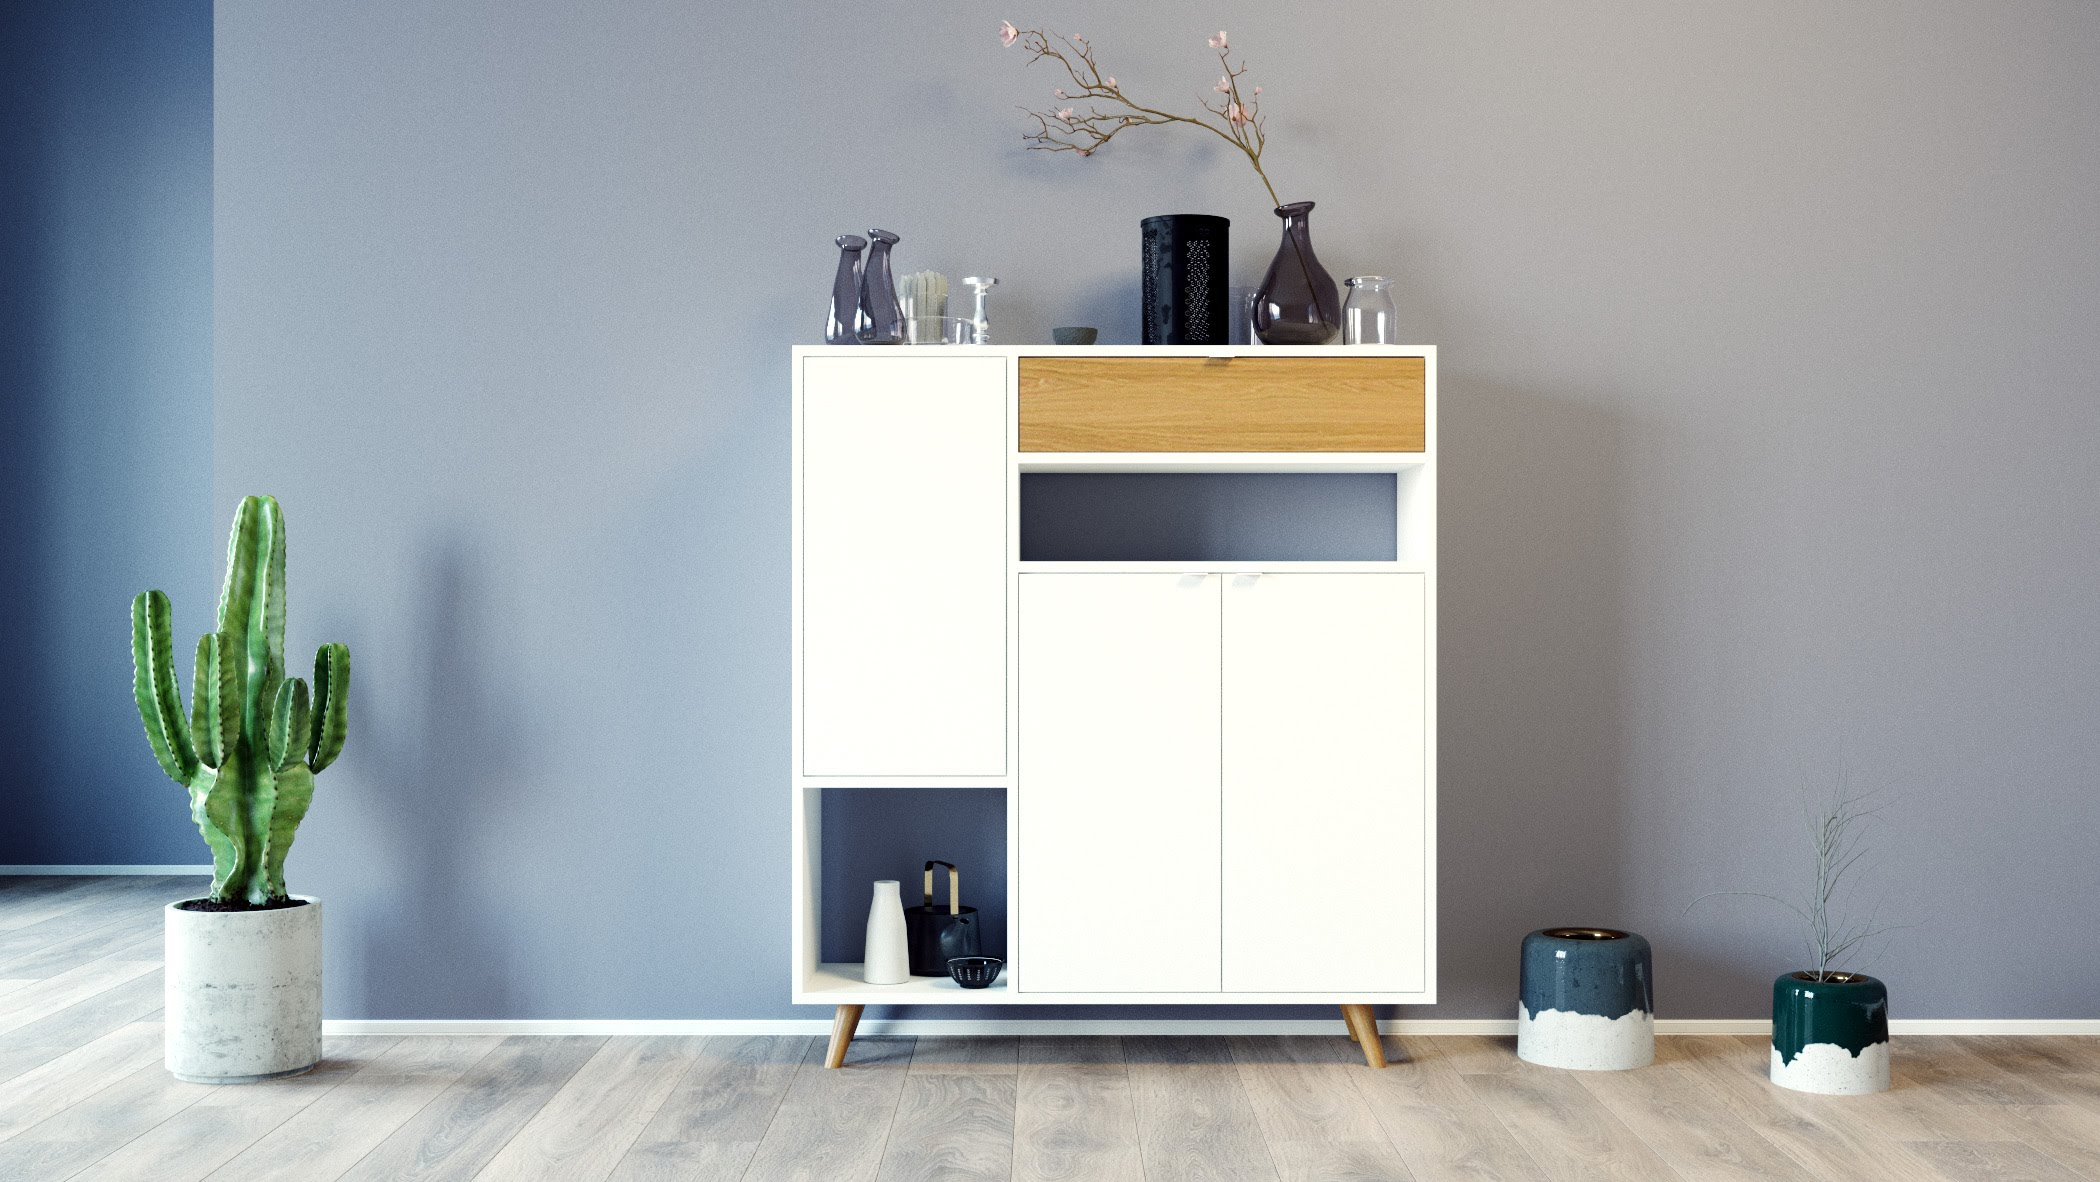 GRYD Highboard _GRYD Kommode_wei· und buche_MYCS | by andy - for better